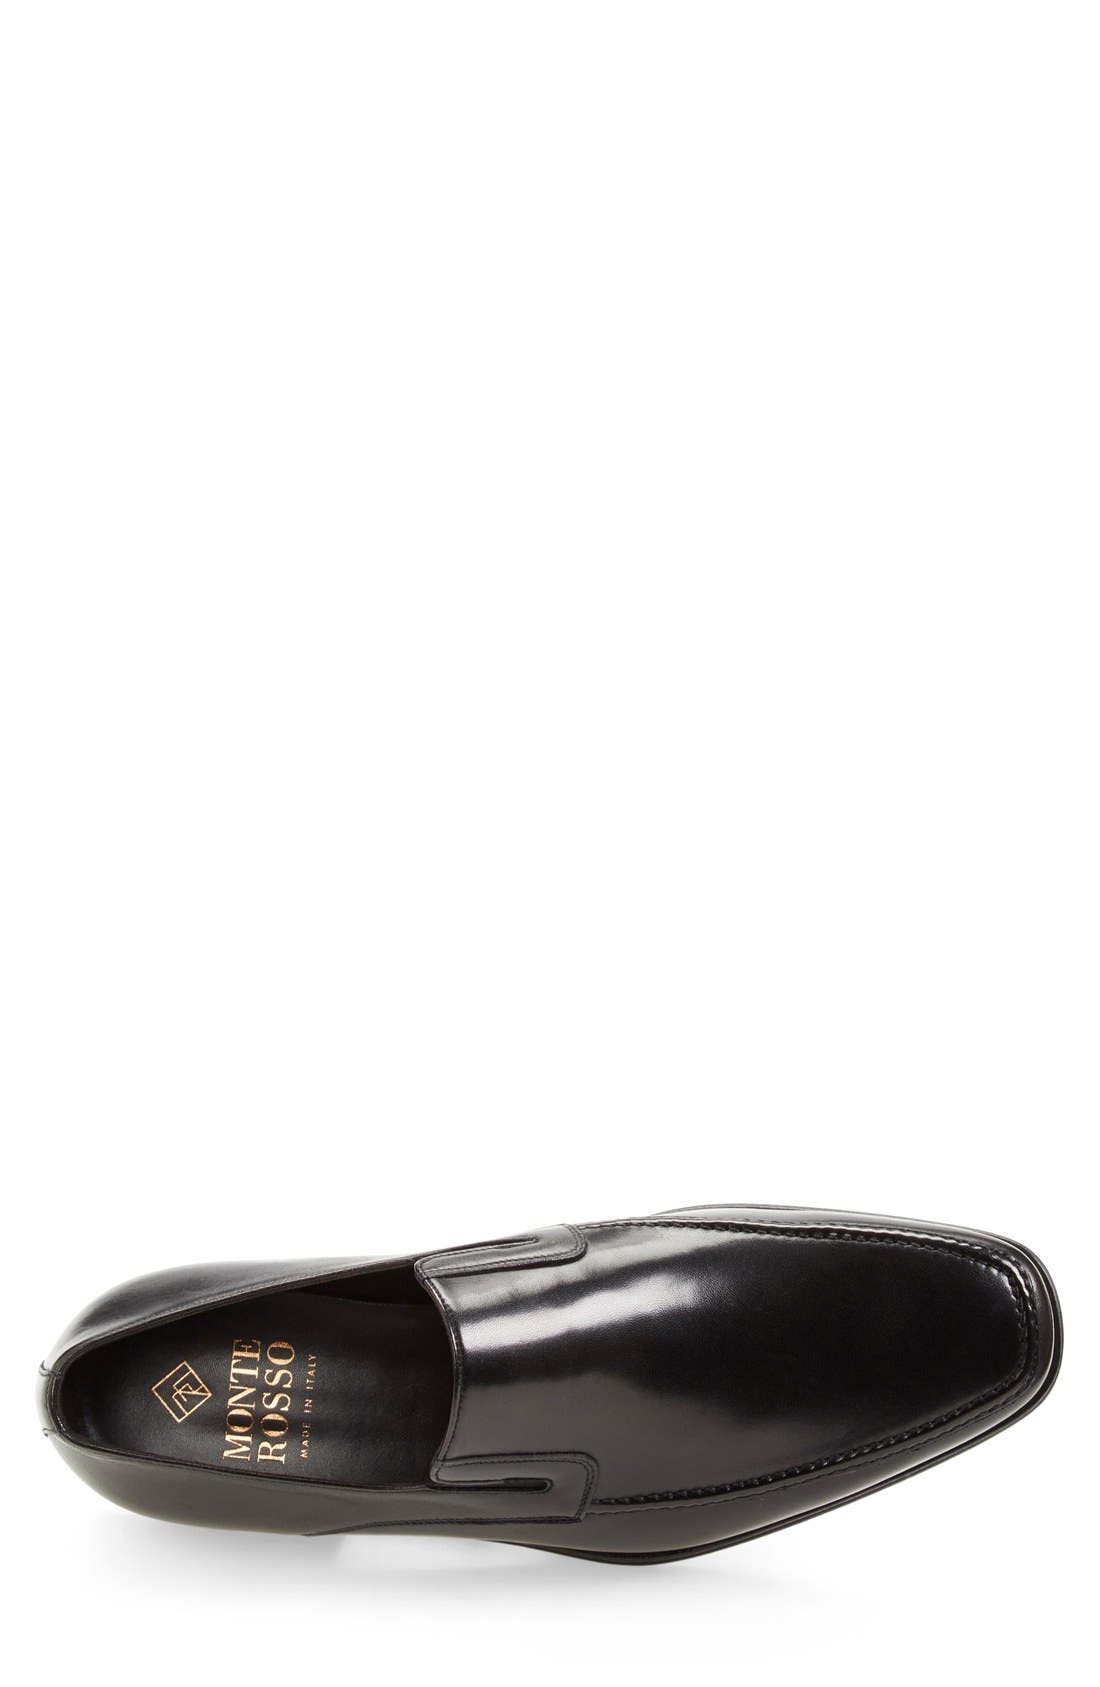 Lucca Nappa Leather Loafer,                             Alternate thumbnail 7, color,                             BLACK